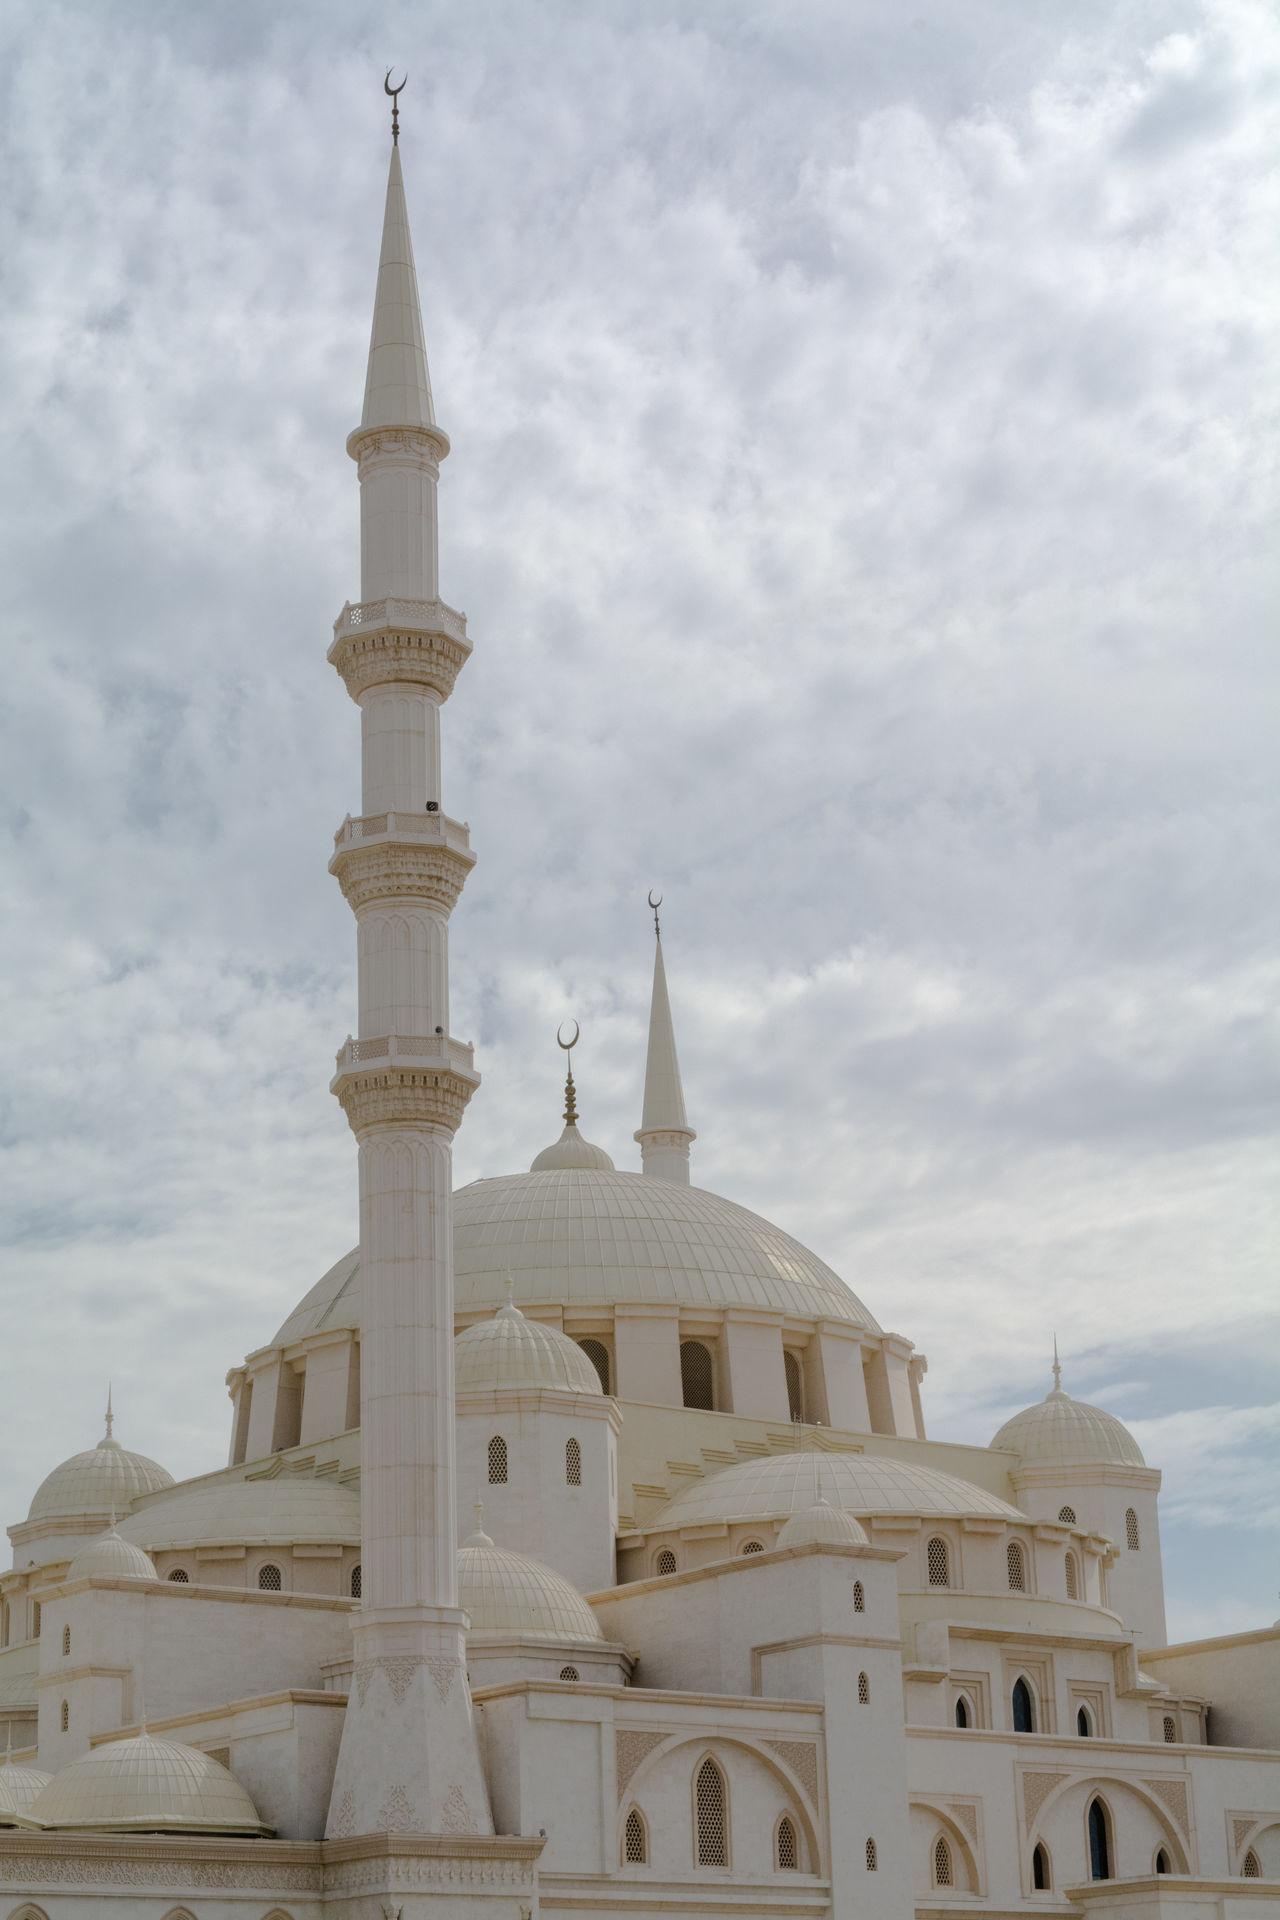 Architectural Feature Architecture Building Exterior Built Structure City Cloud Cloud - Sky Cloudy Day Dome Exterior Fujairah High Section Islamic Architecture Low Angle View Minaret Mosque No People Outdoors Place Of Worship Religion Sky Spirituality Tourism Travel Destinations